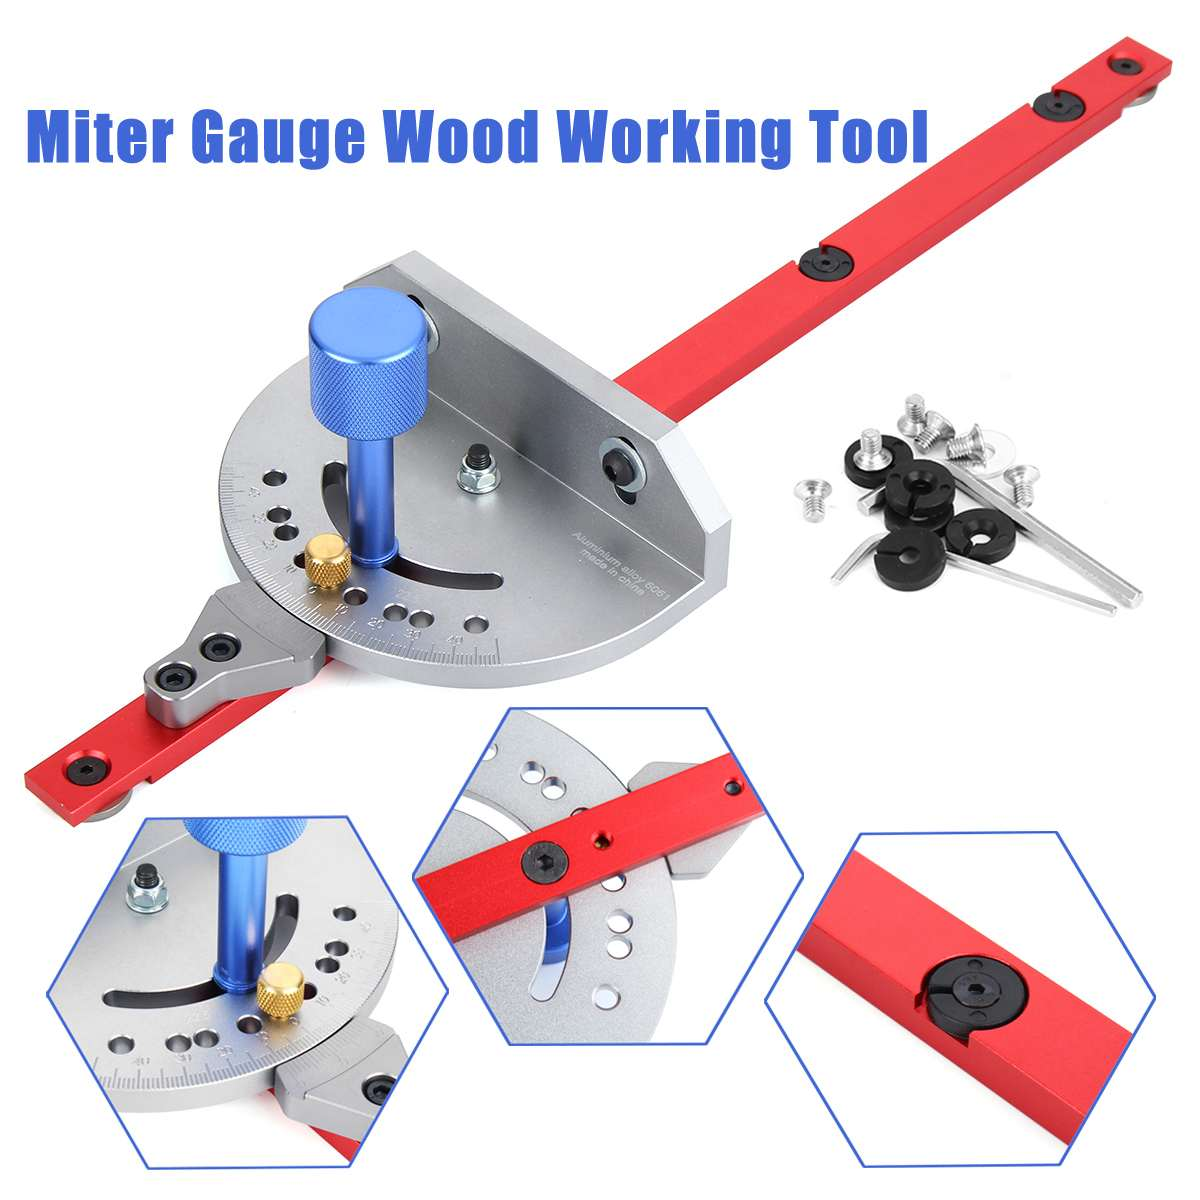 1Pcs Miter Gauge Wood Working Tool For Bandsaw Table Saw Router Angle Miter Gauge Guide Fence Woodworking Machinery Parts1Pcs Miter Gauge Wood Working Tool For Bandsaw Table Saw Router Angle Miter Gauge Guide Fence Woodworking Machinery Parts